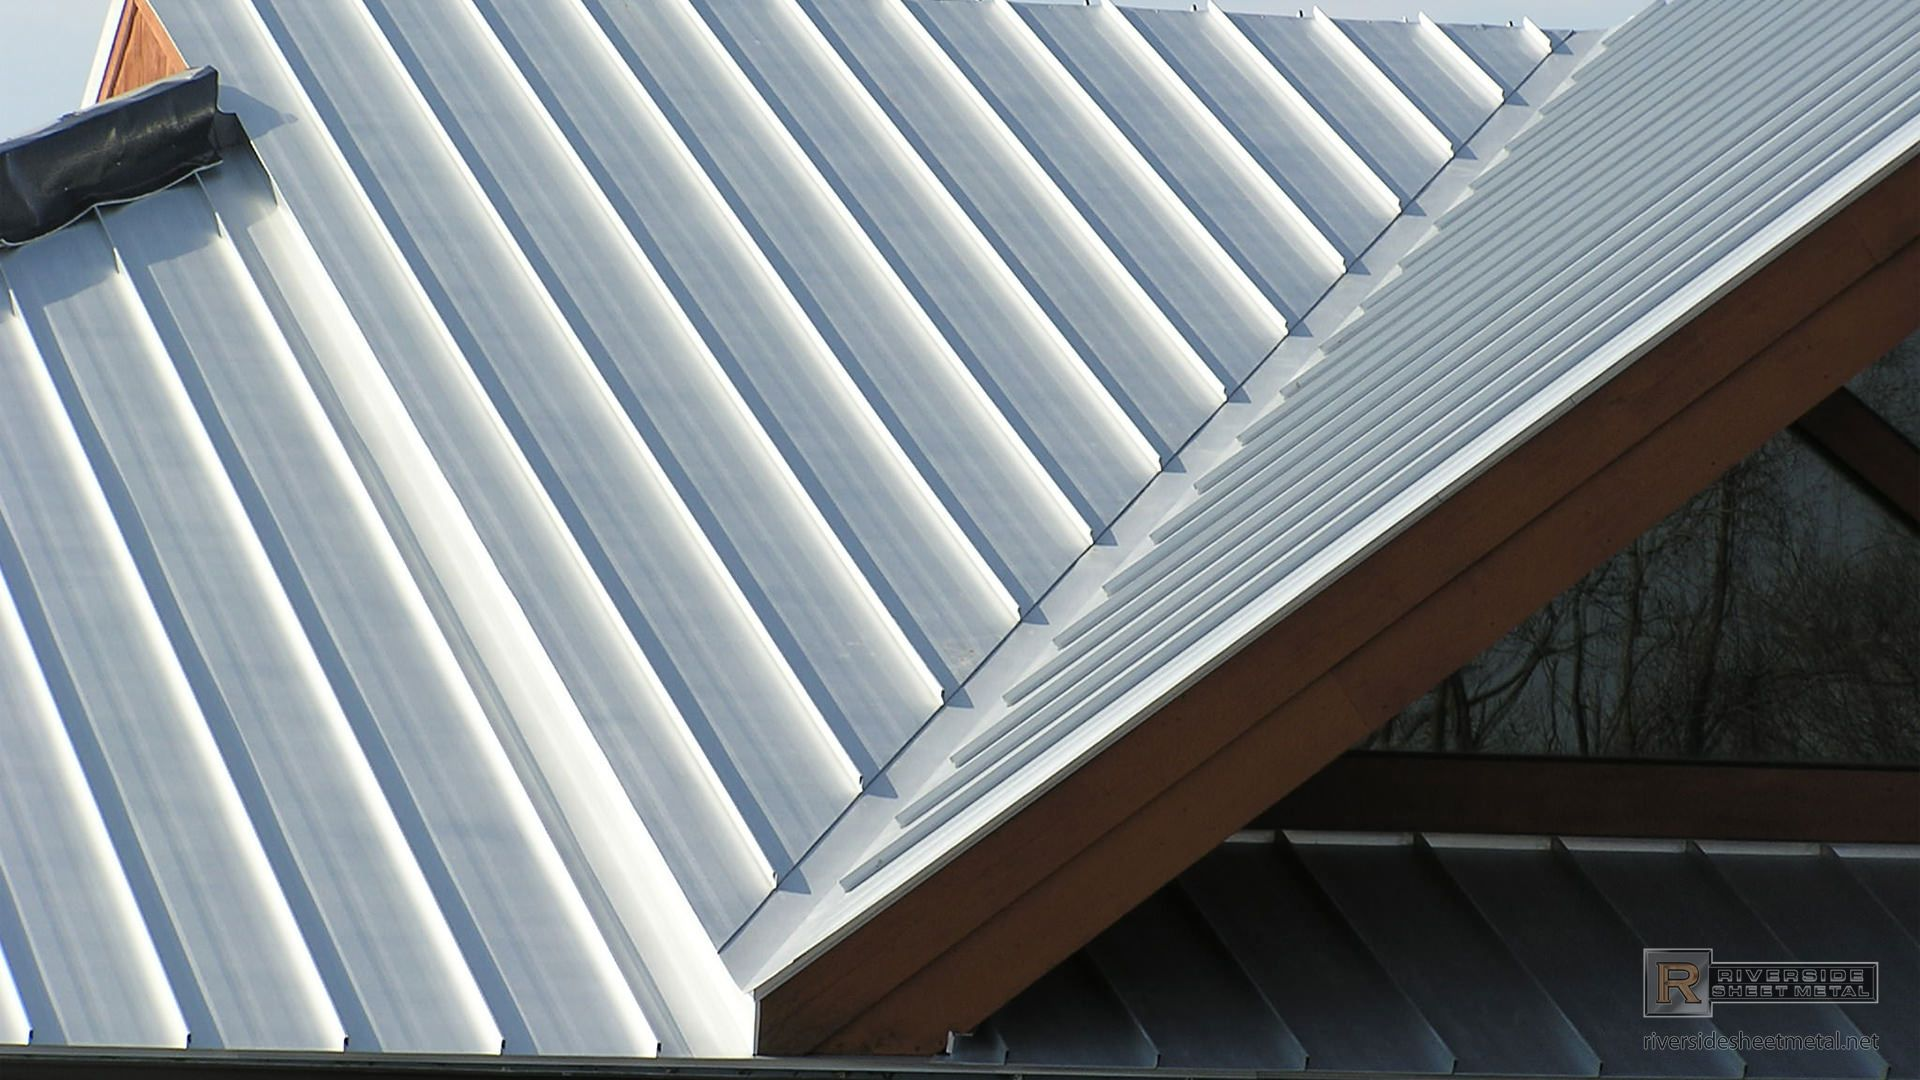 Galvalume Metal Roof Victory Metal Roofing In Easley Sc Metal Roof Panels Steel Roof Panels Aluminum Roof Panels